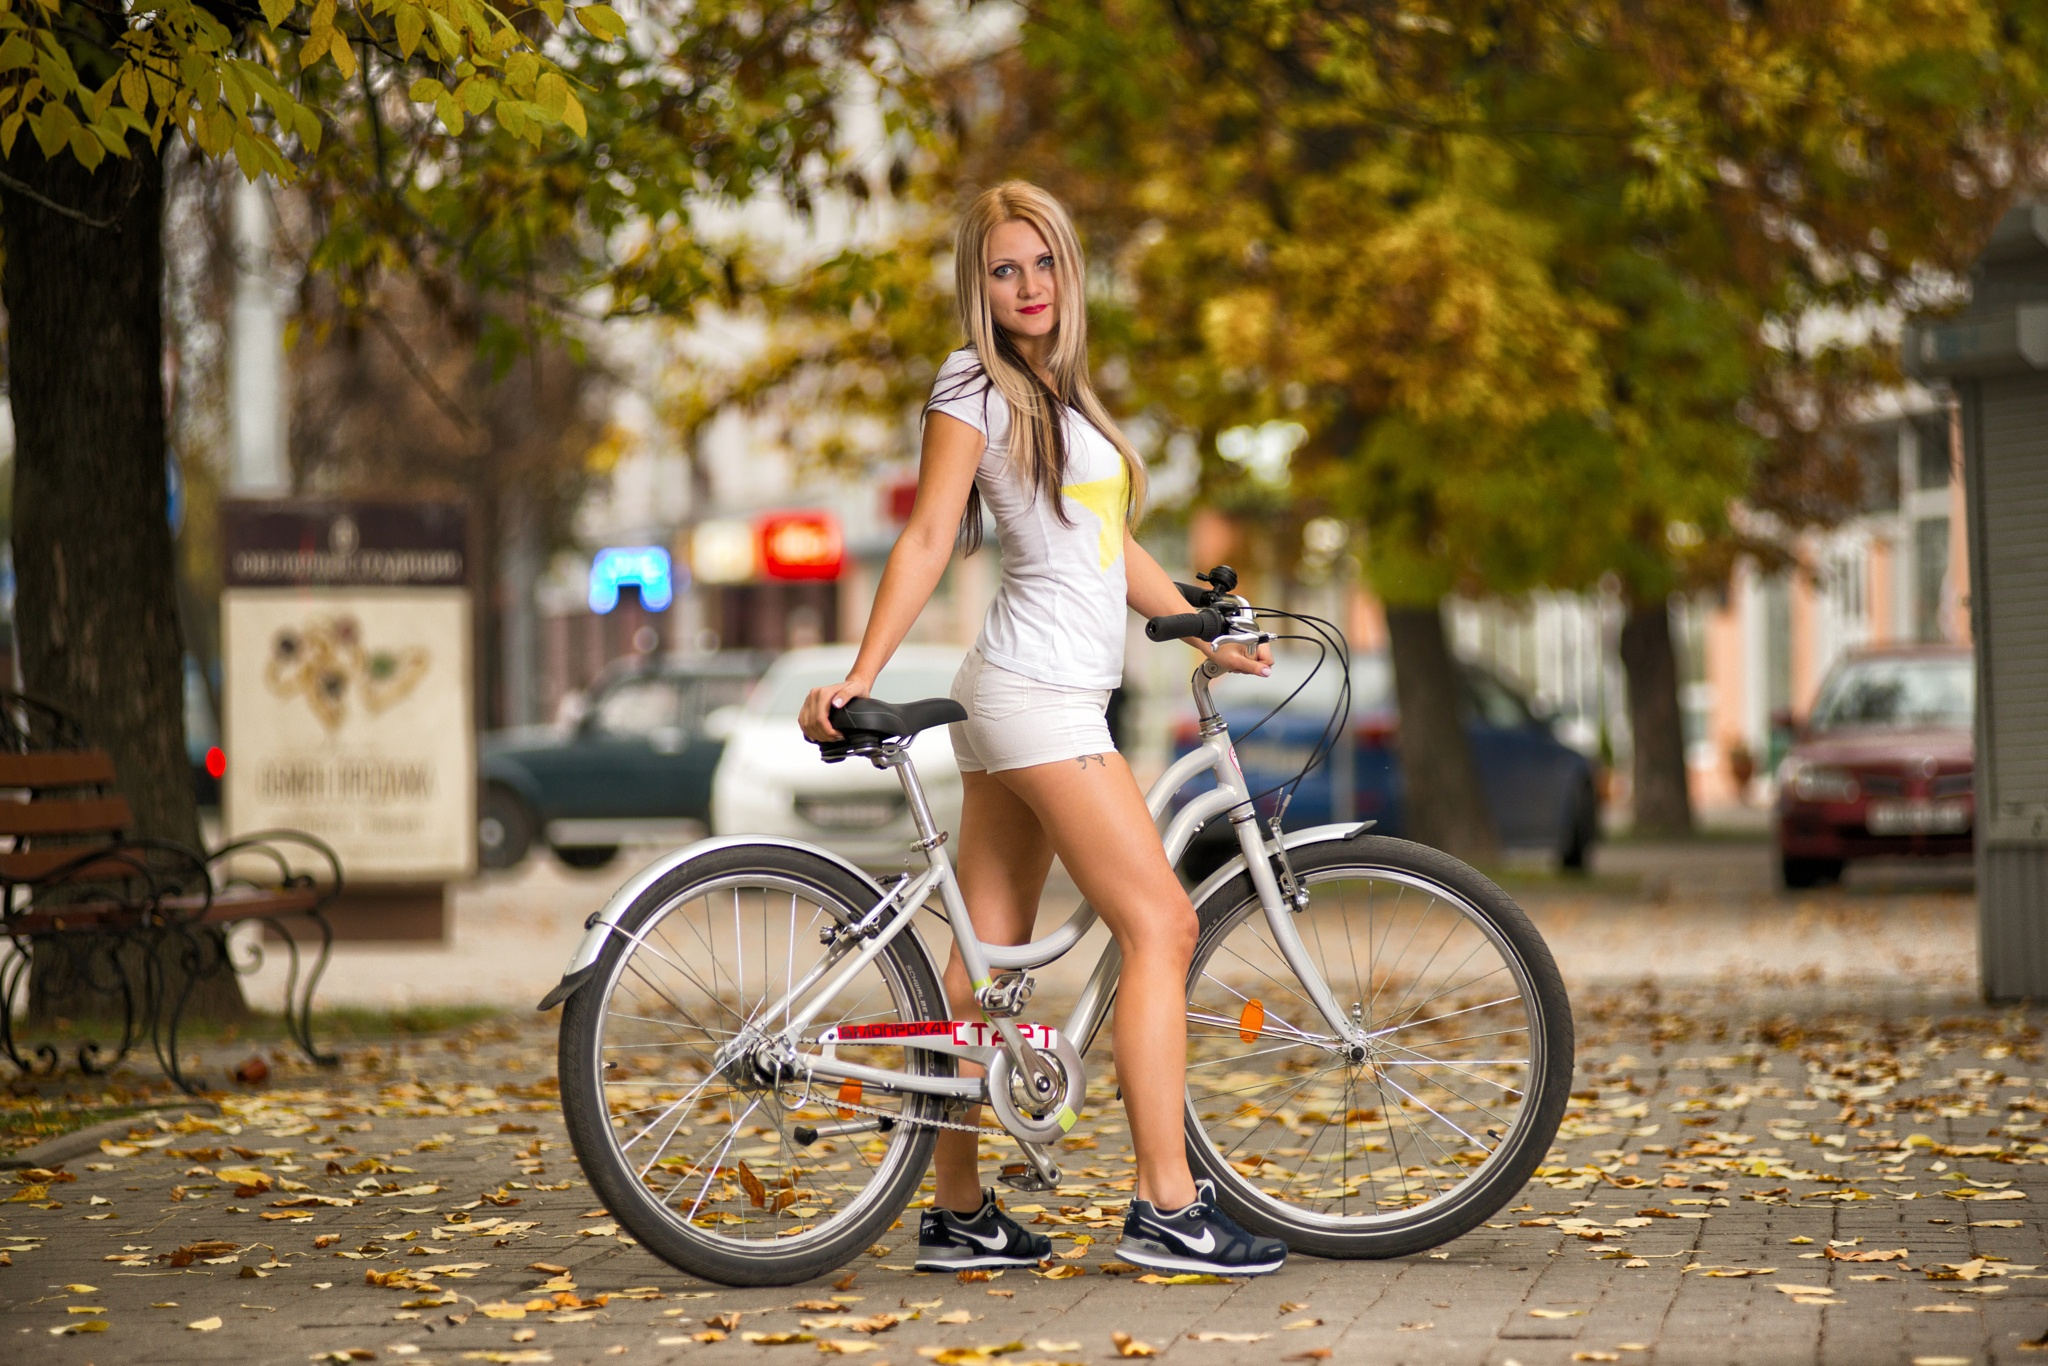 Hot girls on street bikes, pussy the best virgin